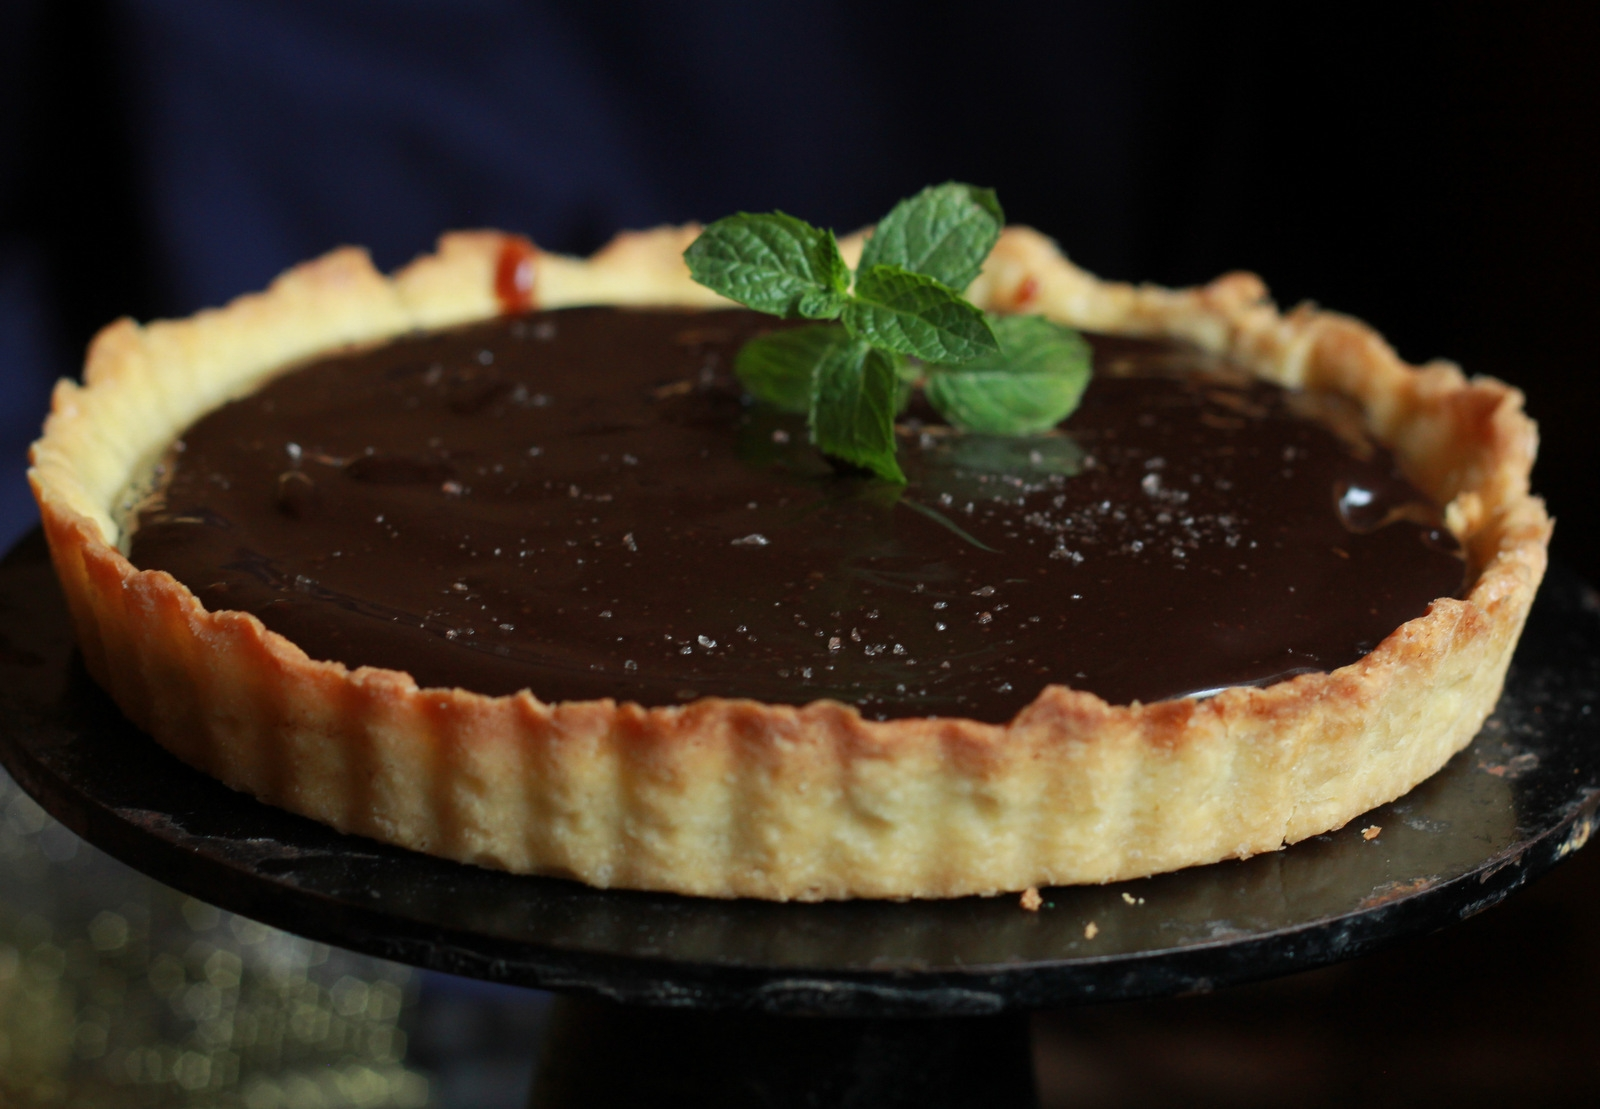 Chocolate Salted Caramel Tart Recipe